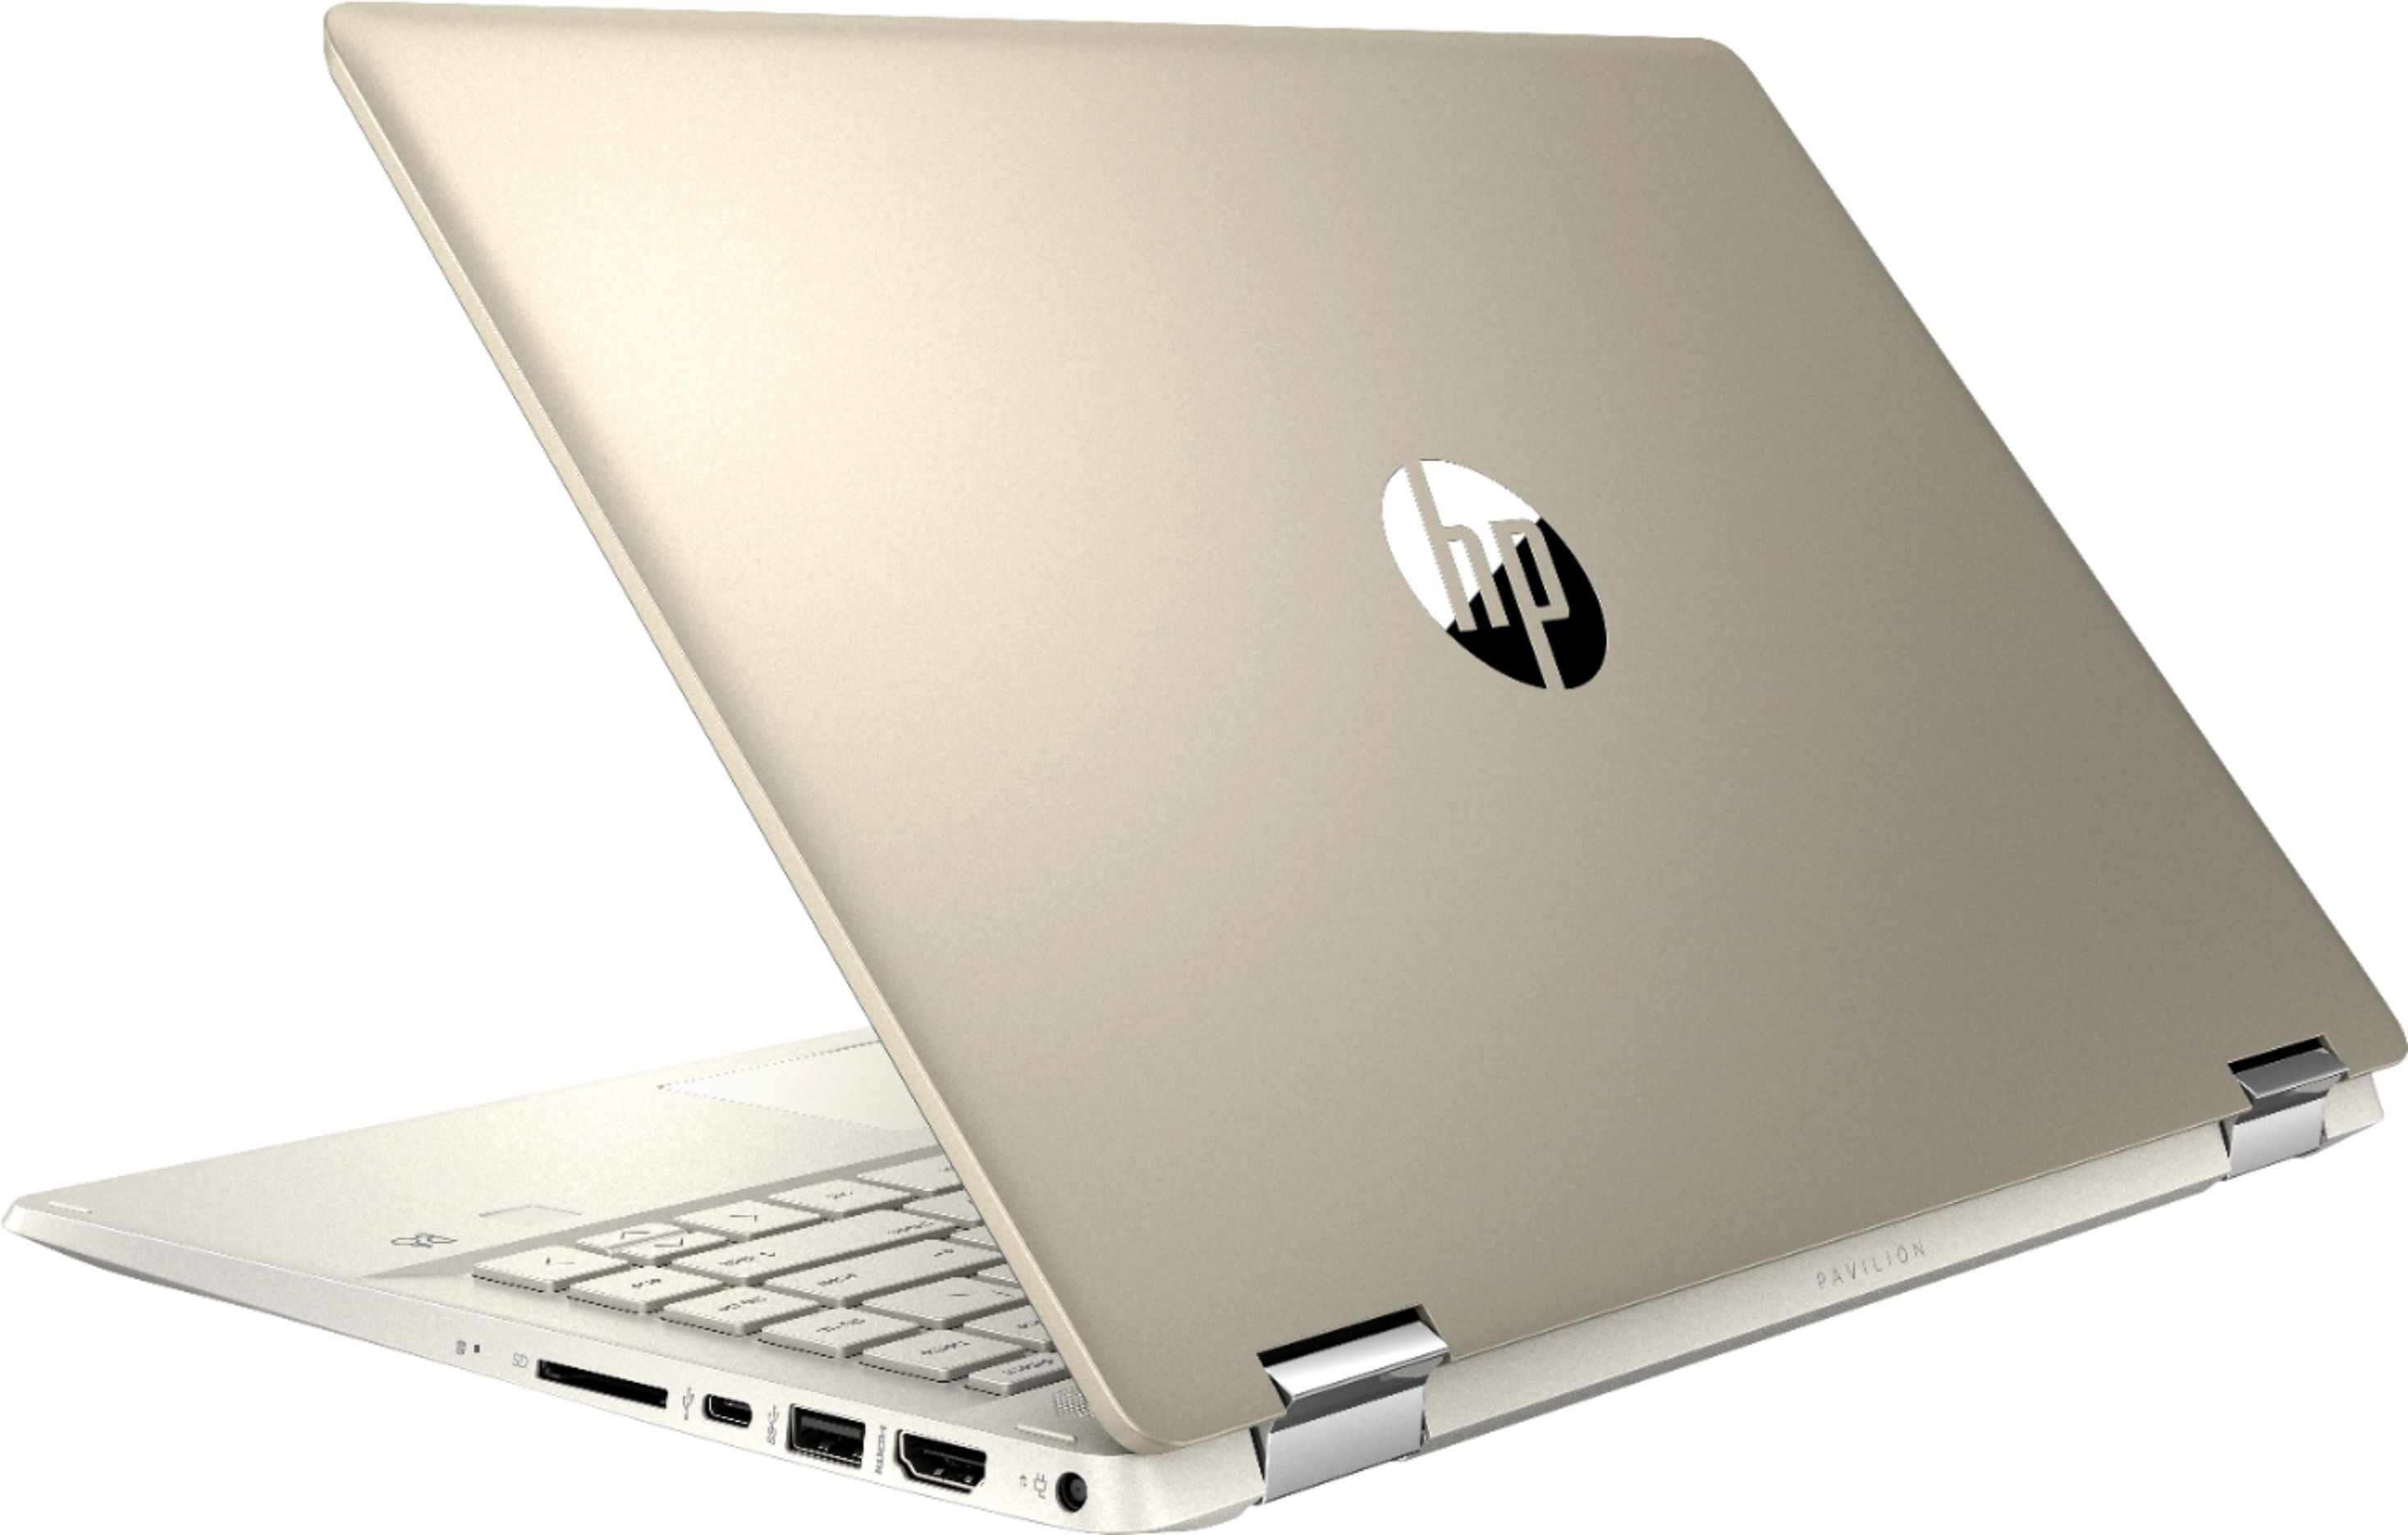 """Alt View Zoom 1. HP - Geek Squad Certified Refurbished Pavilion x360 2-in-1 14"""" Touch-Screen Laptop - Intel Core i5 - 8GB Memory - 128GB SSD - Anodized Finish In Warm Gold And Luminous Gold."""